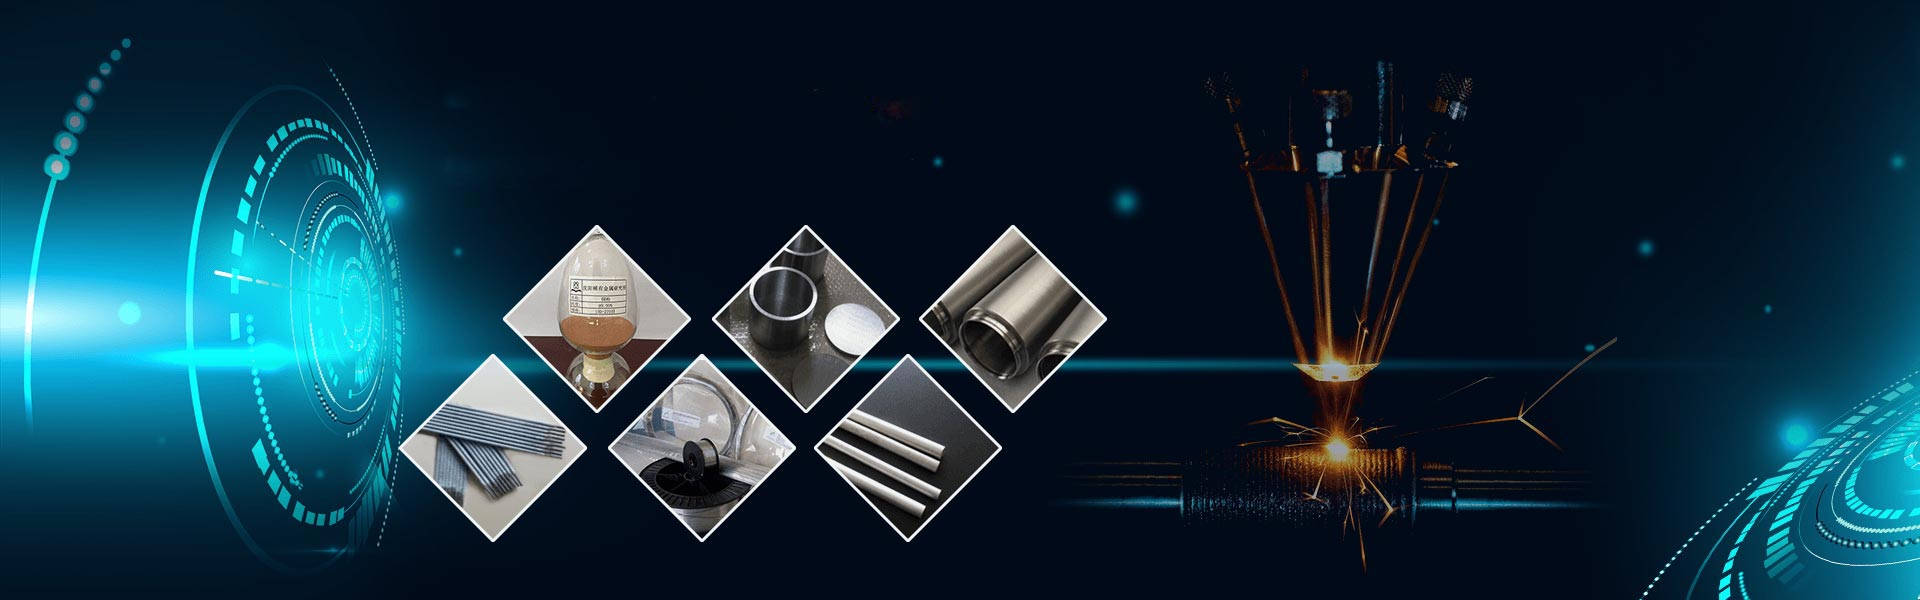 superalloy product center